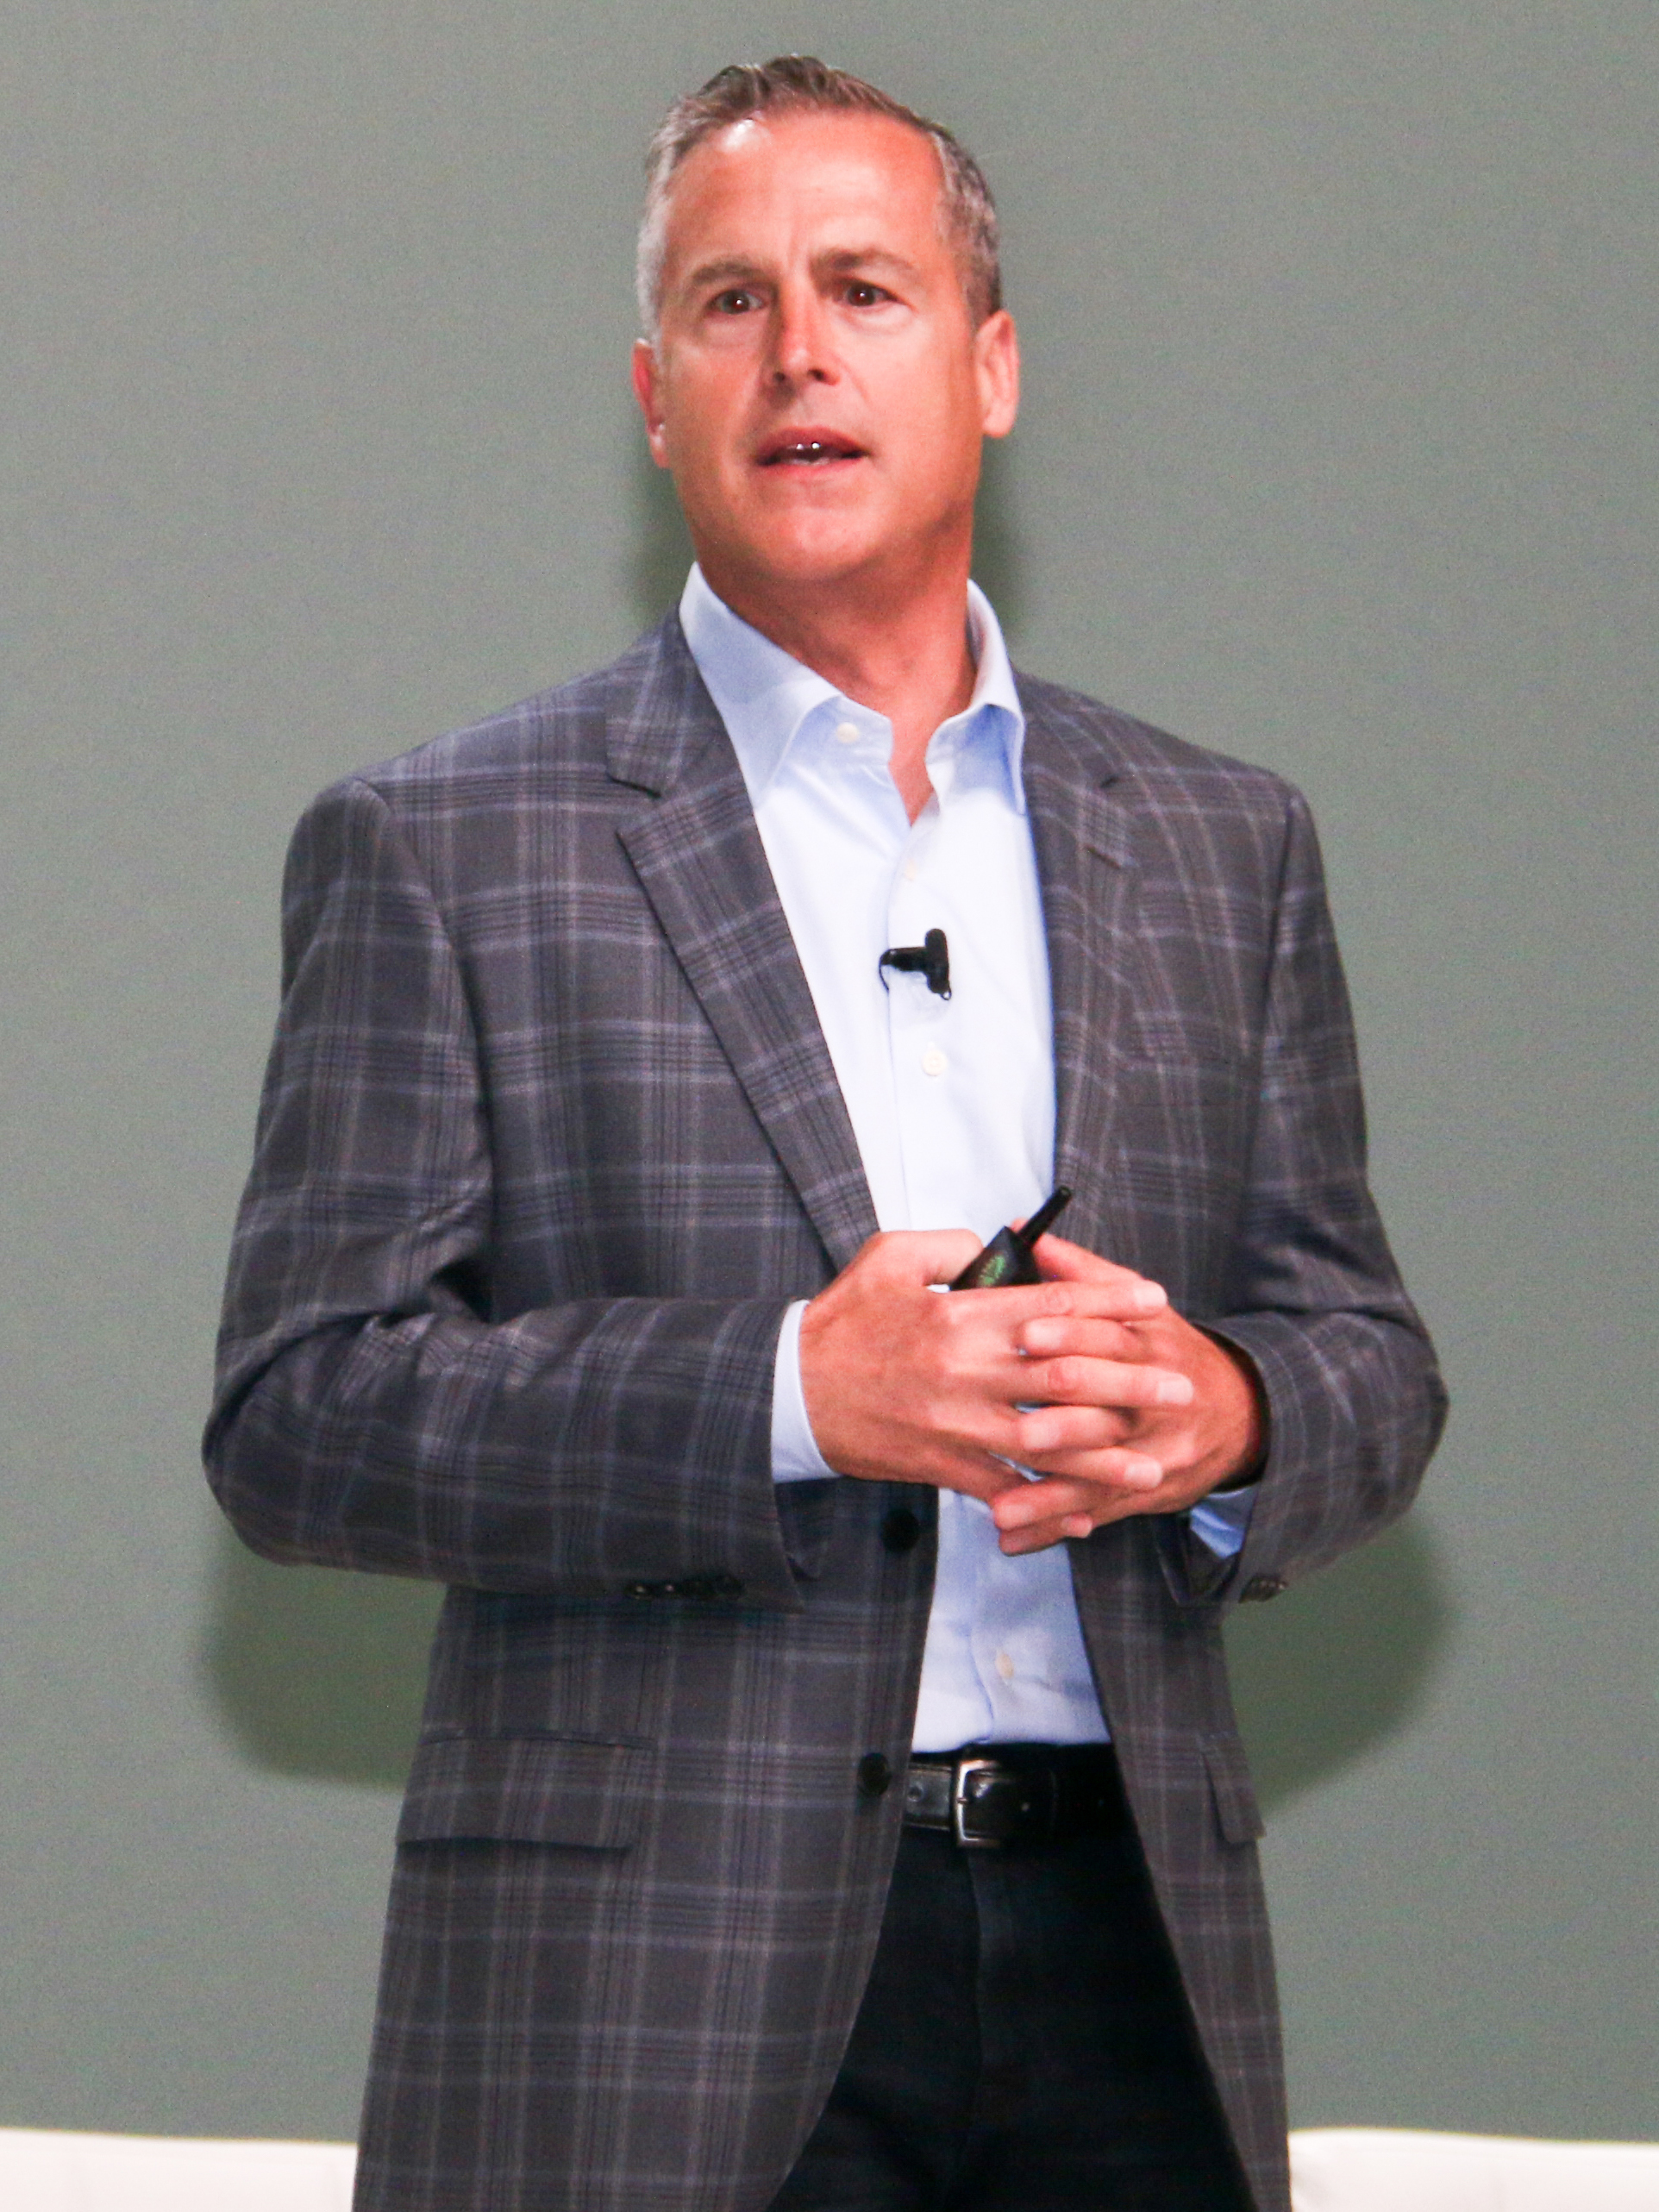 VeeamON 2017: New features for Veeam Availability Platform and financial results